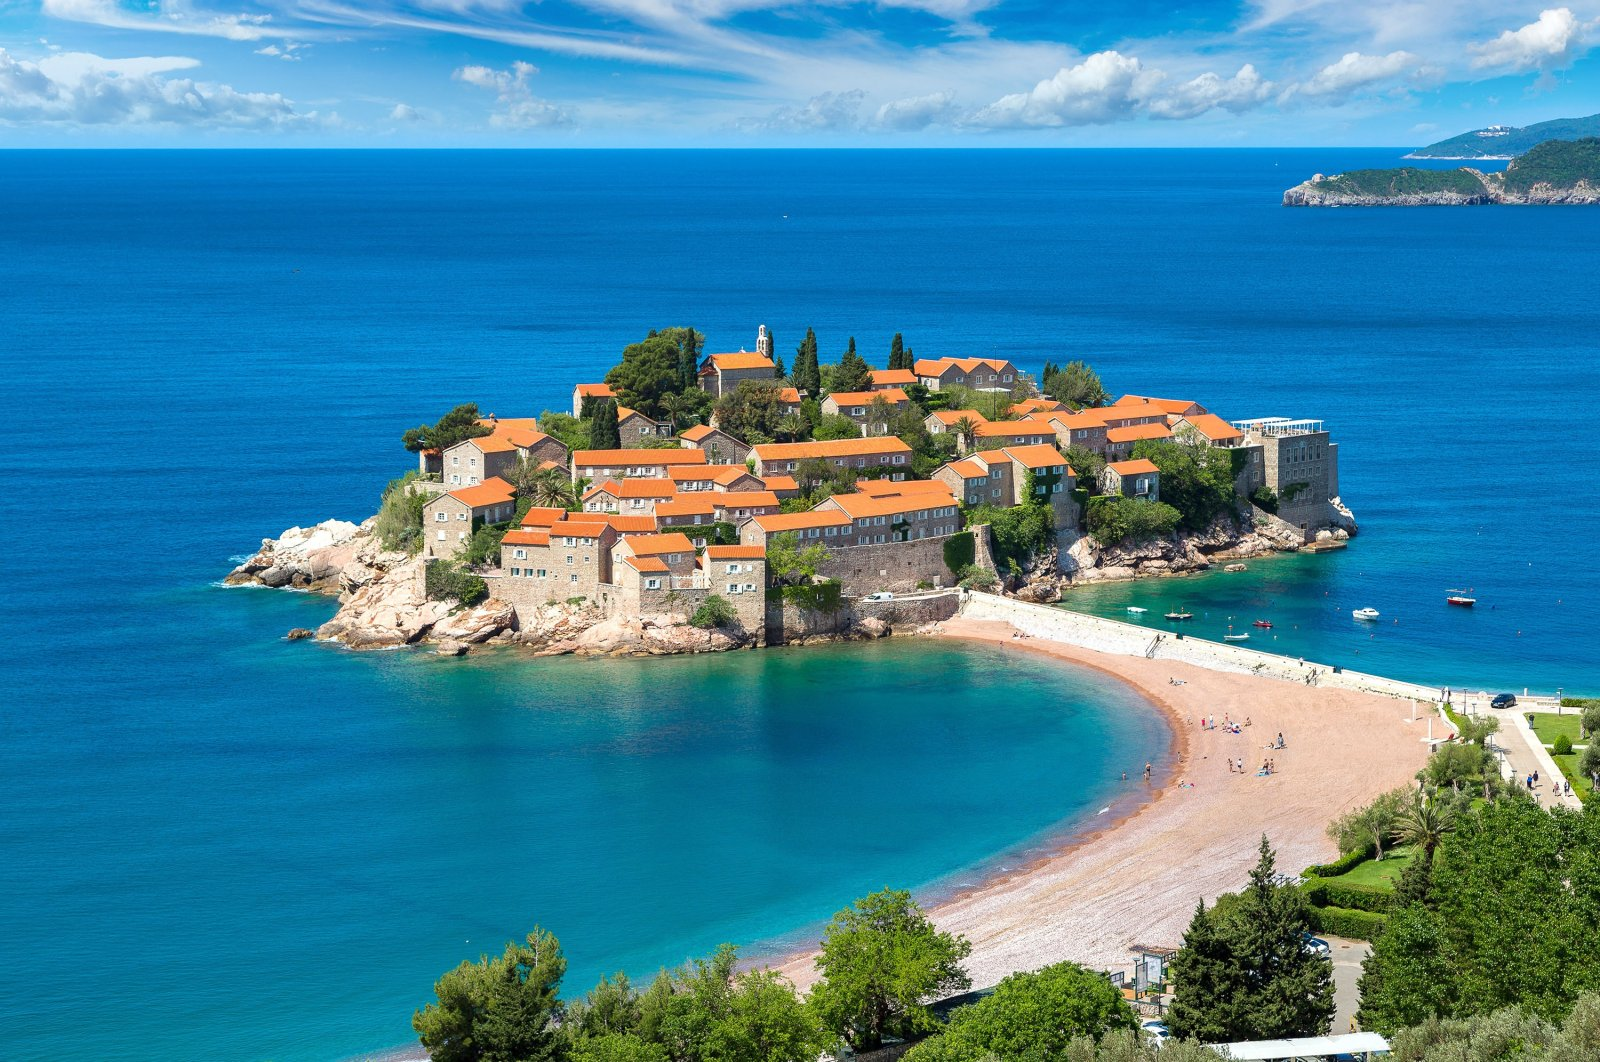 The small islet of Sveti Stefan stands surrounded by the waters of the Adriatic Sea in western Montenegro. (Shutterstock Photo)